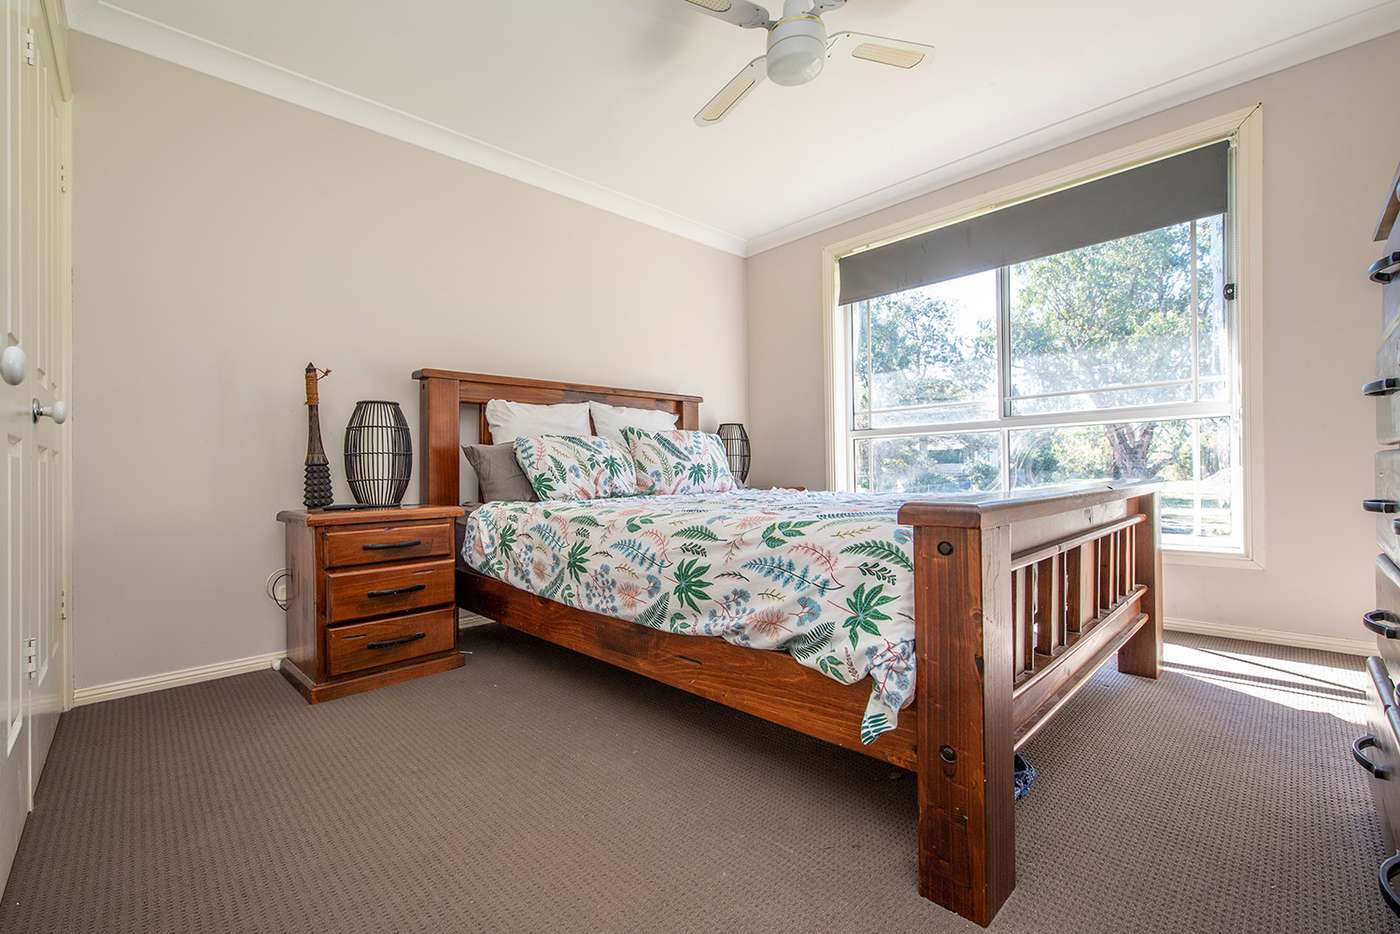 Seventh view of Homely villa listing, 1/14 Paxton Street, Denman NSW 2328